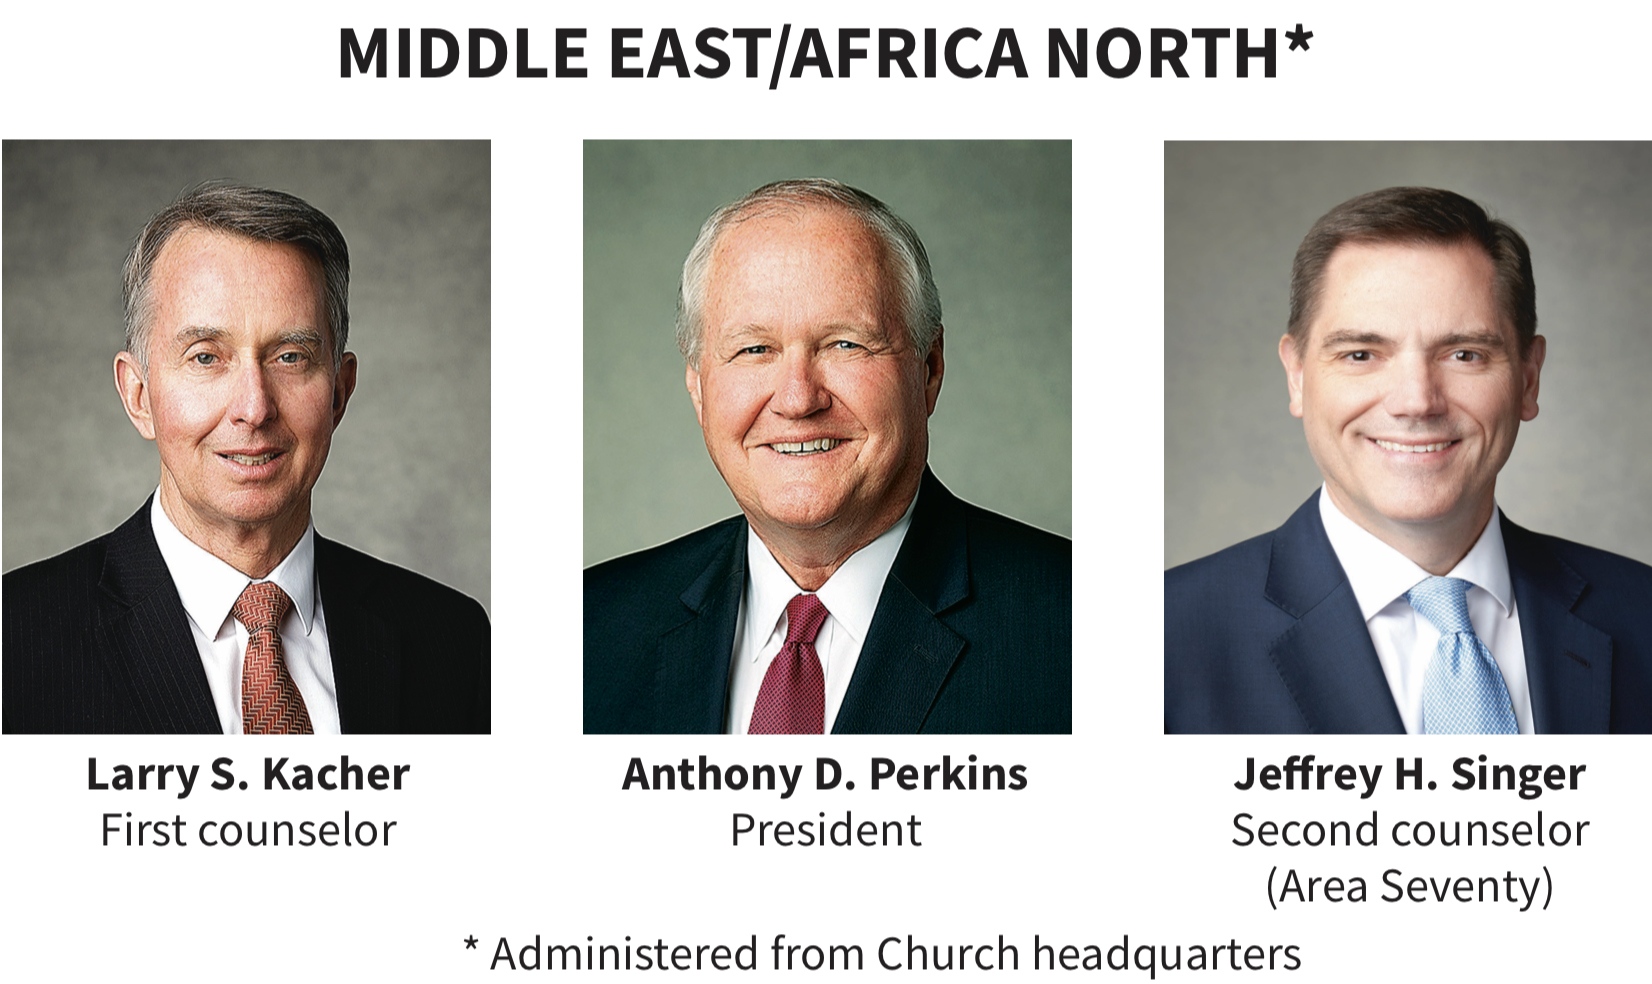 Middle East/Africa North area presidency